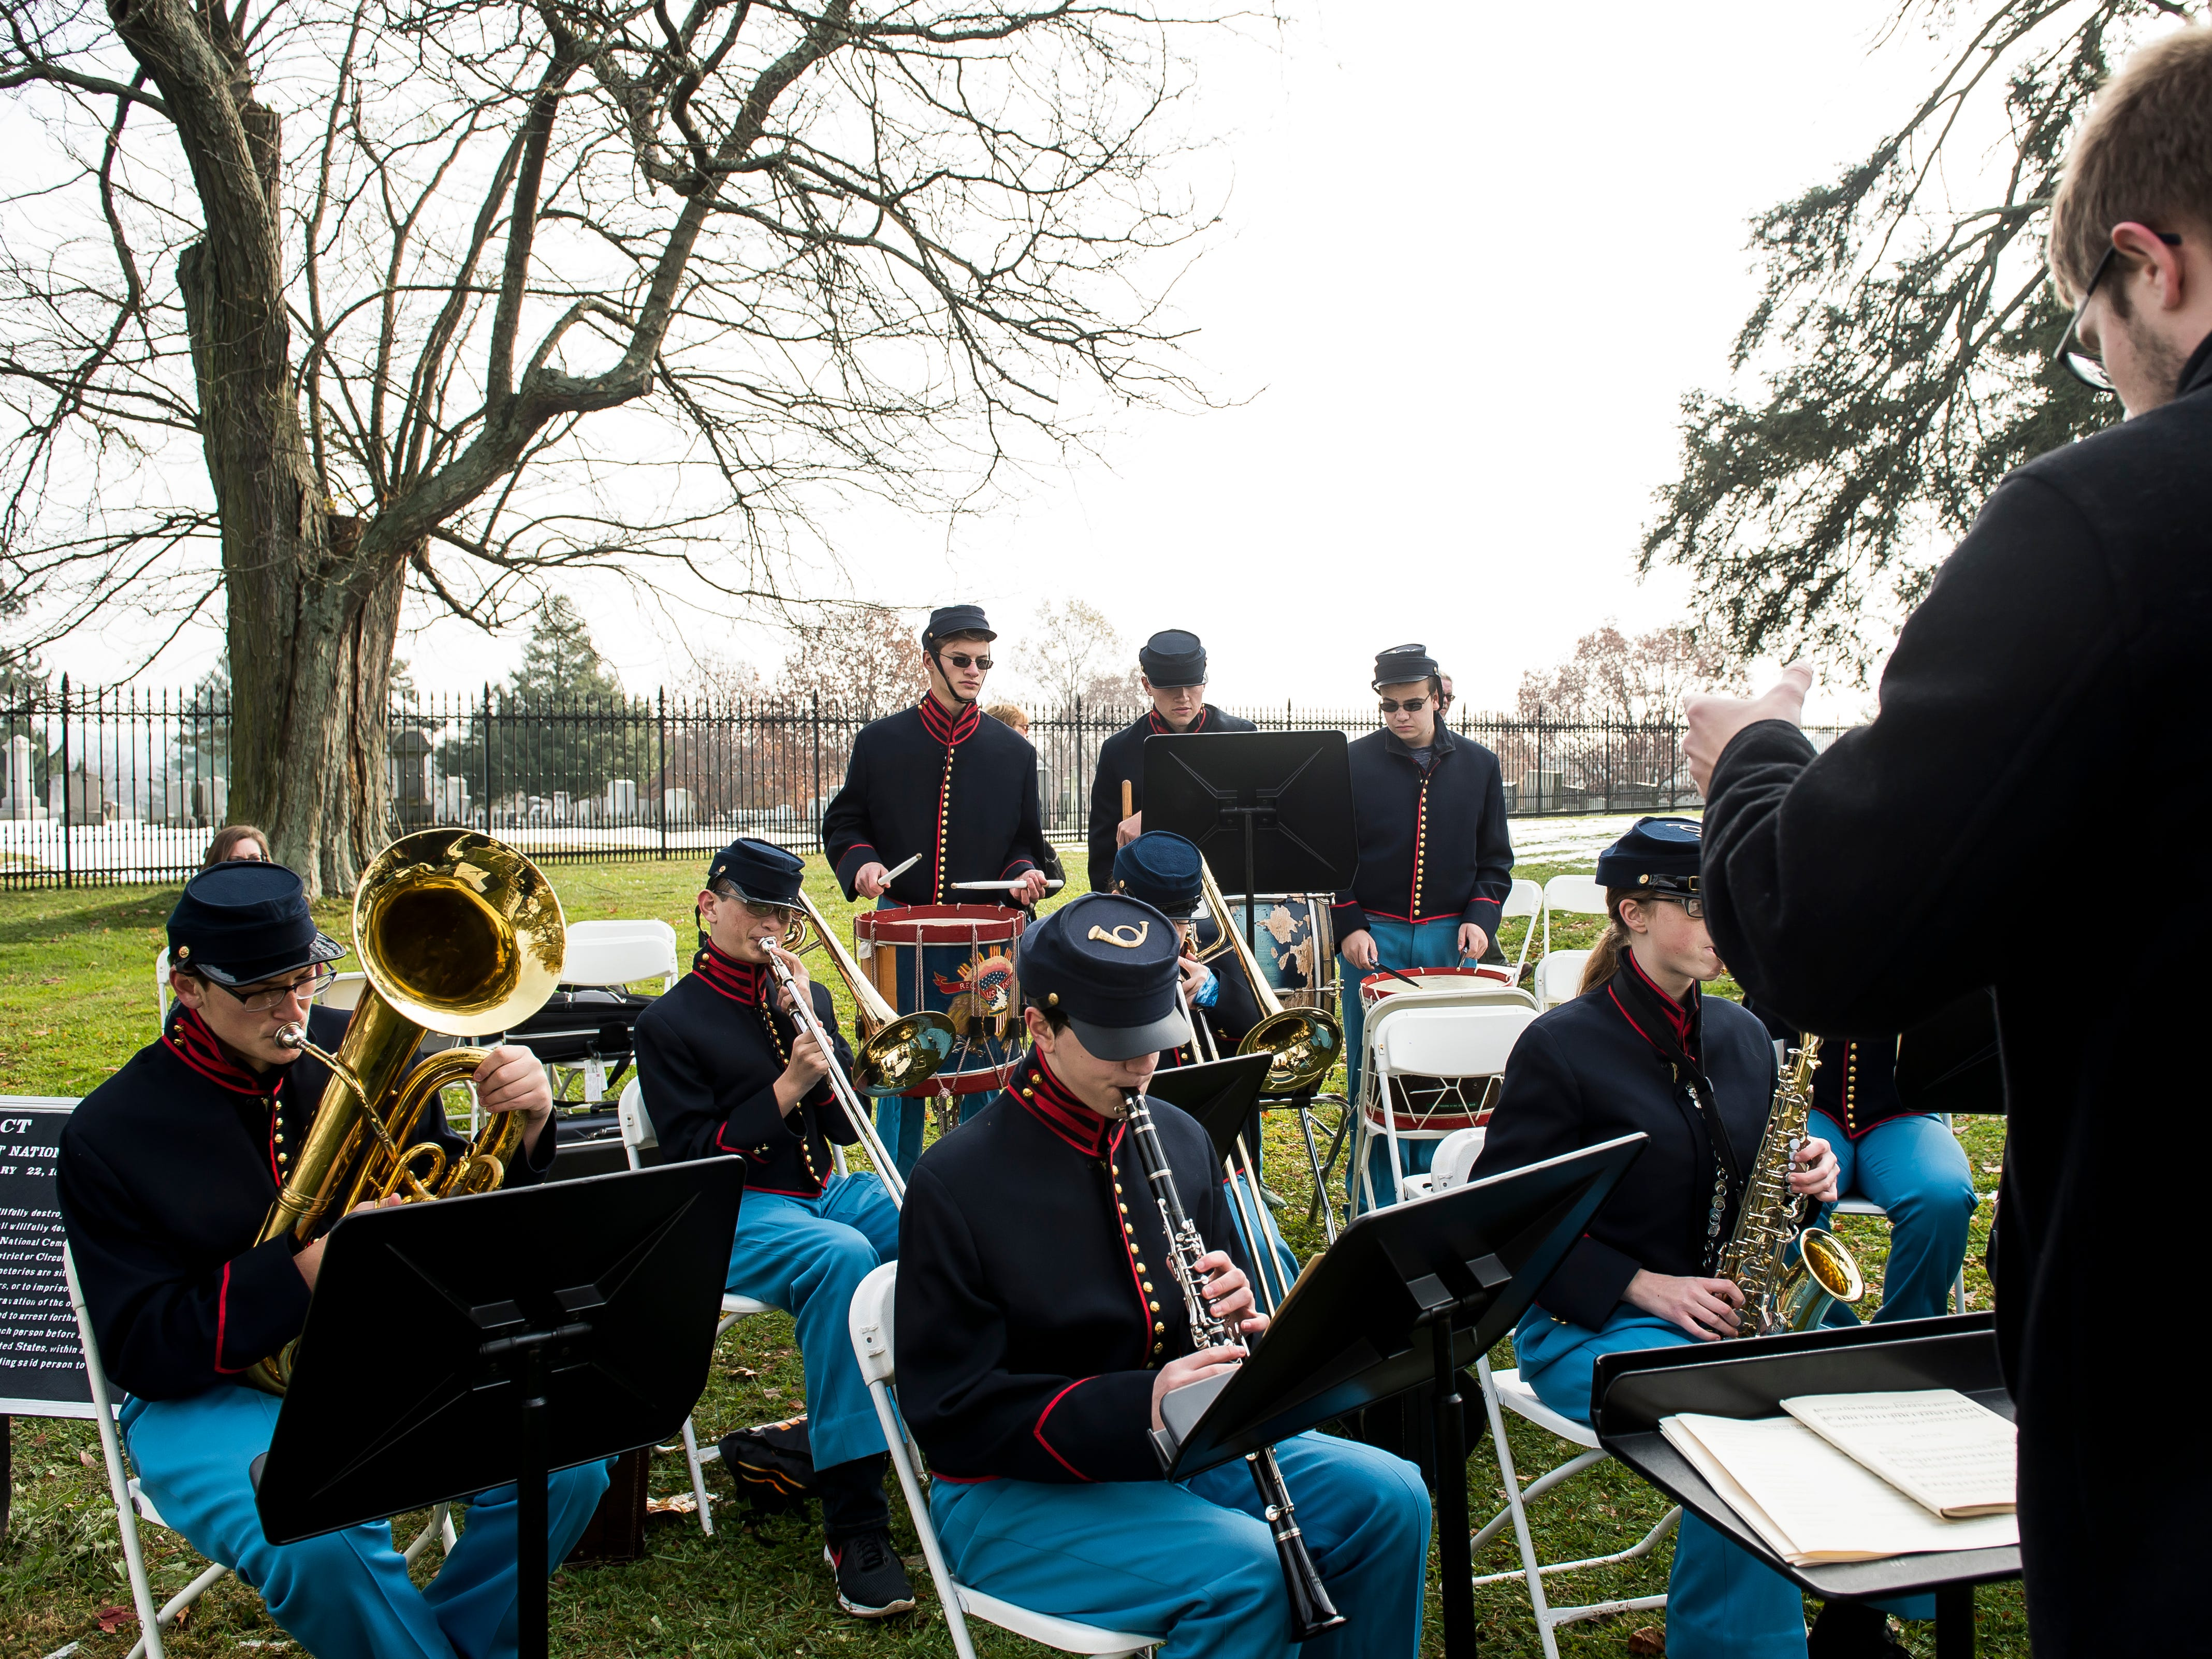 Members of Gettysburg High School's ceremonial band play the National Anthem during the start of Dedication Day in Soldiers' National Cemetery in Gettysburg on November, 19, 2018.